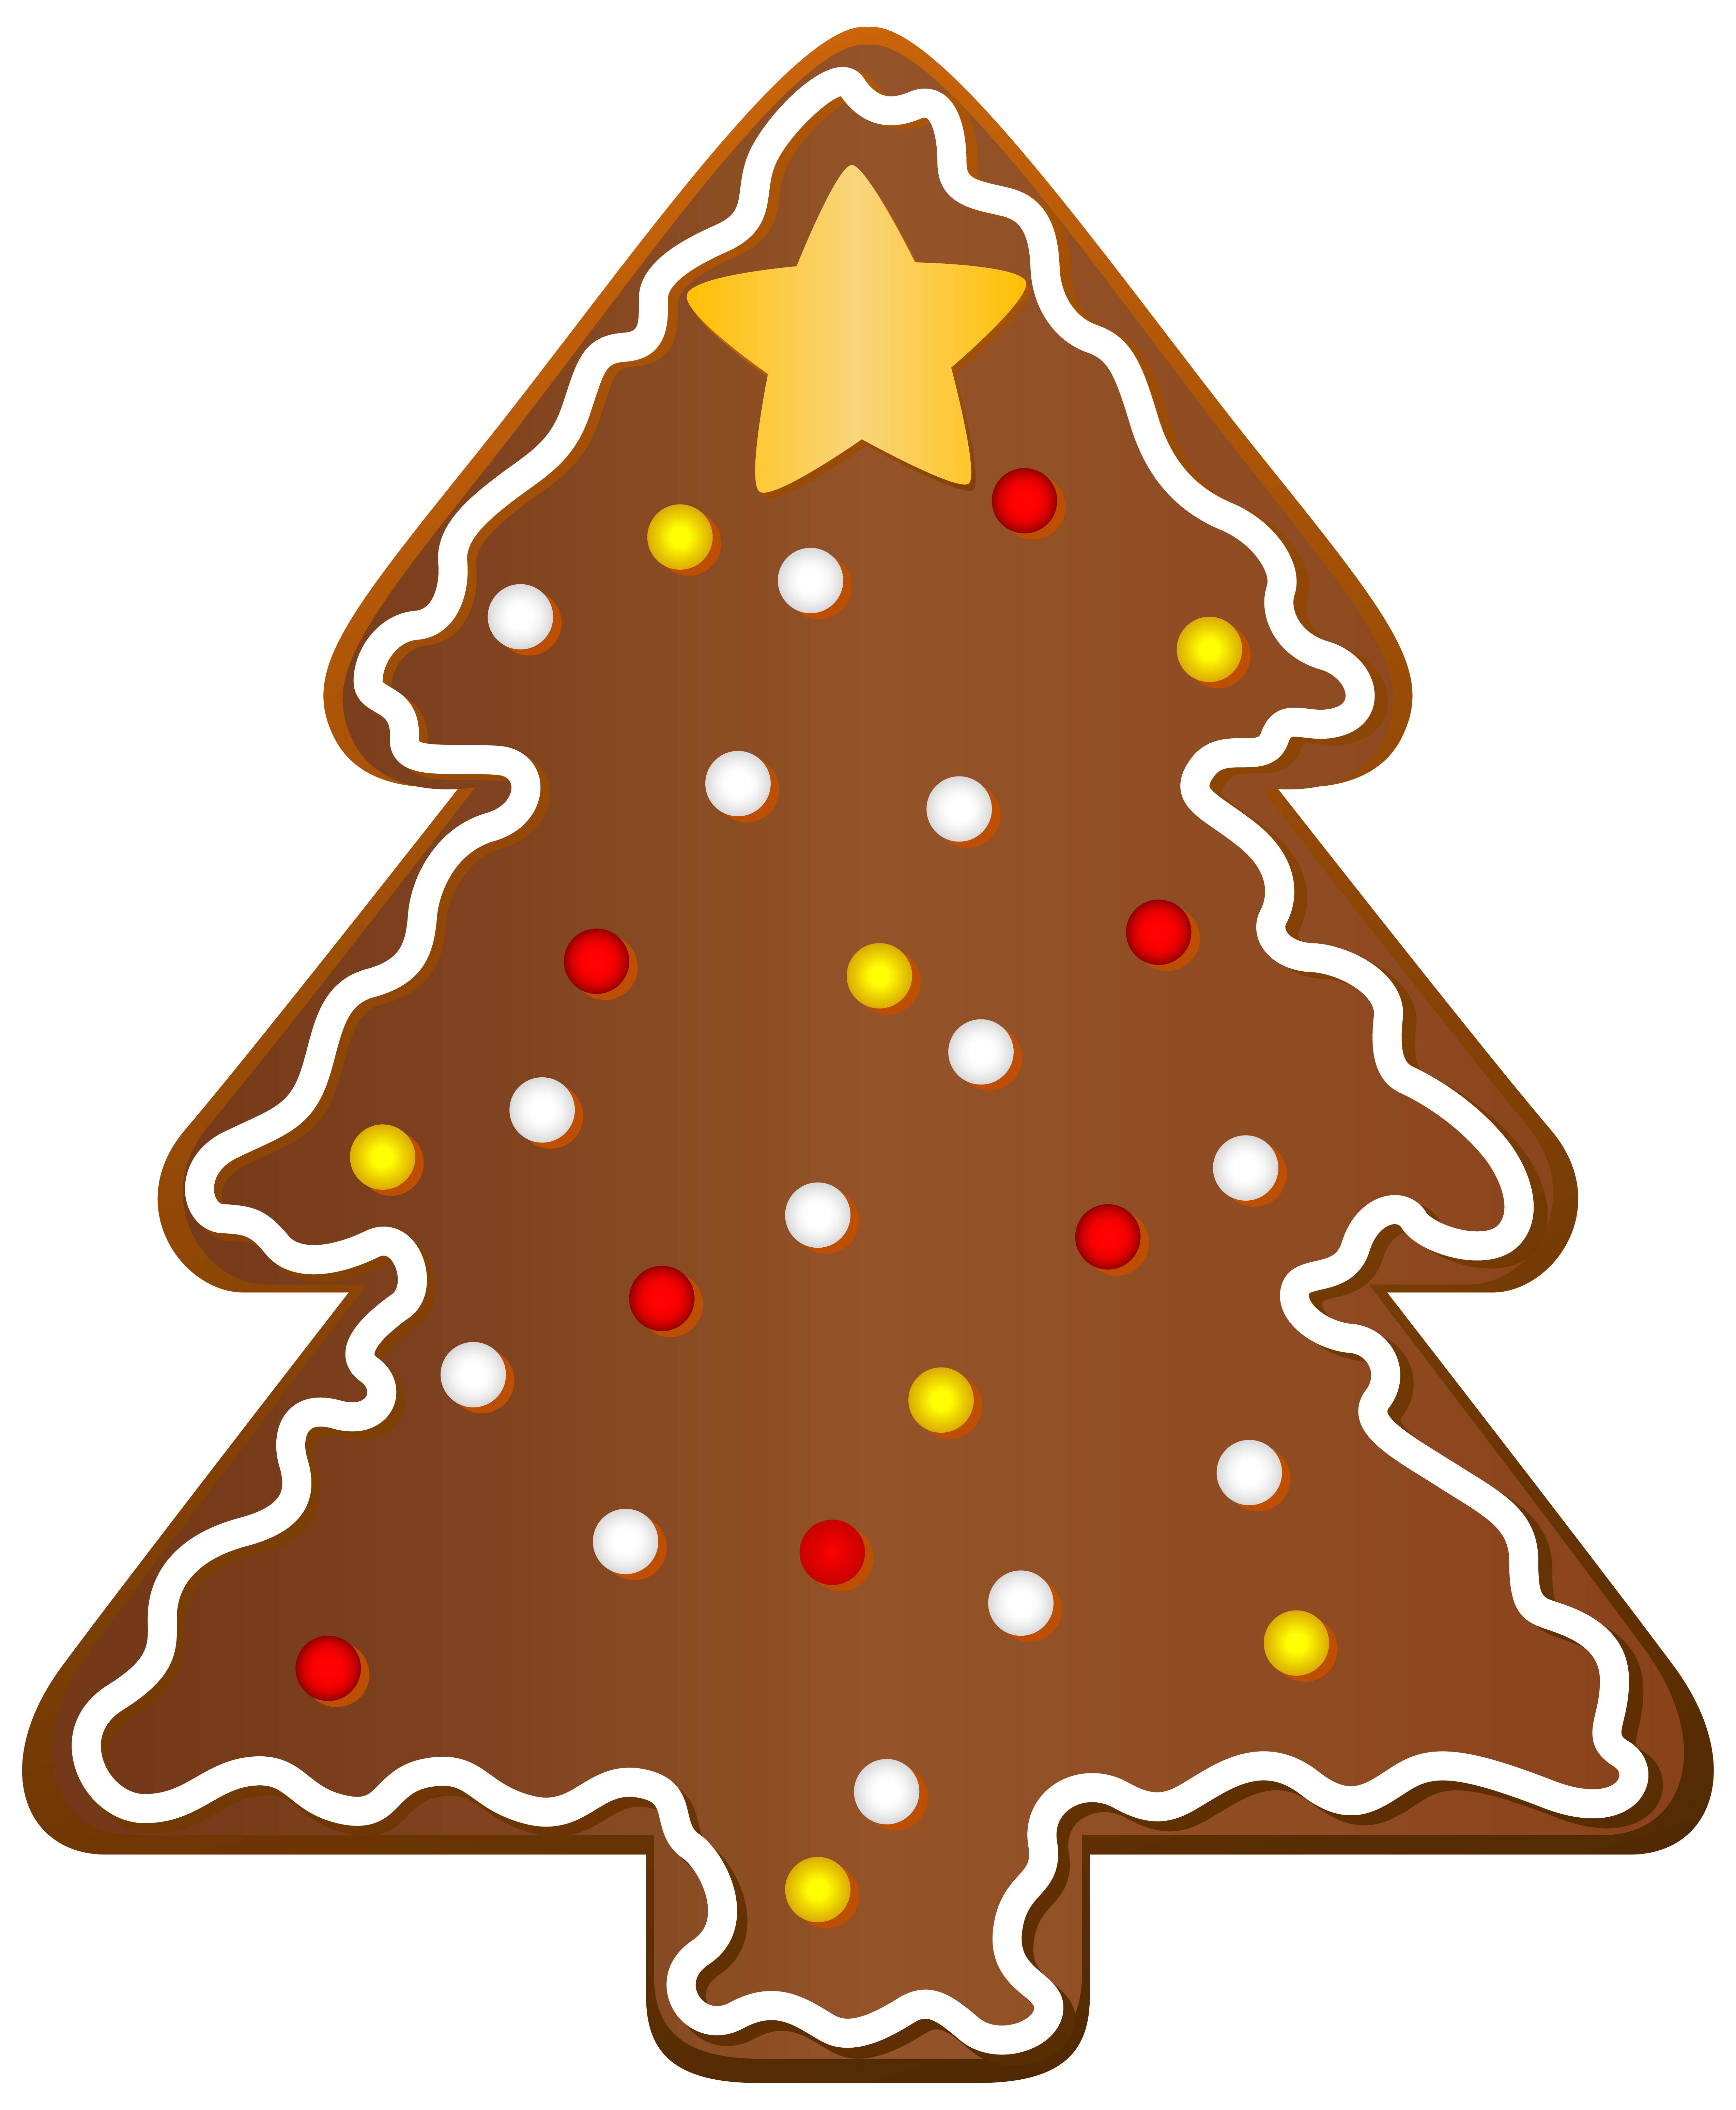 5095x6193 Christmas Cookie Tree Clipart Png Imageu200b Gallery Yopriceville